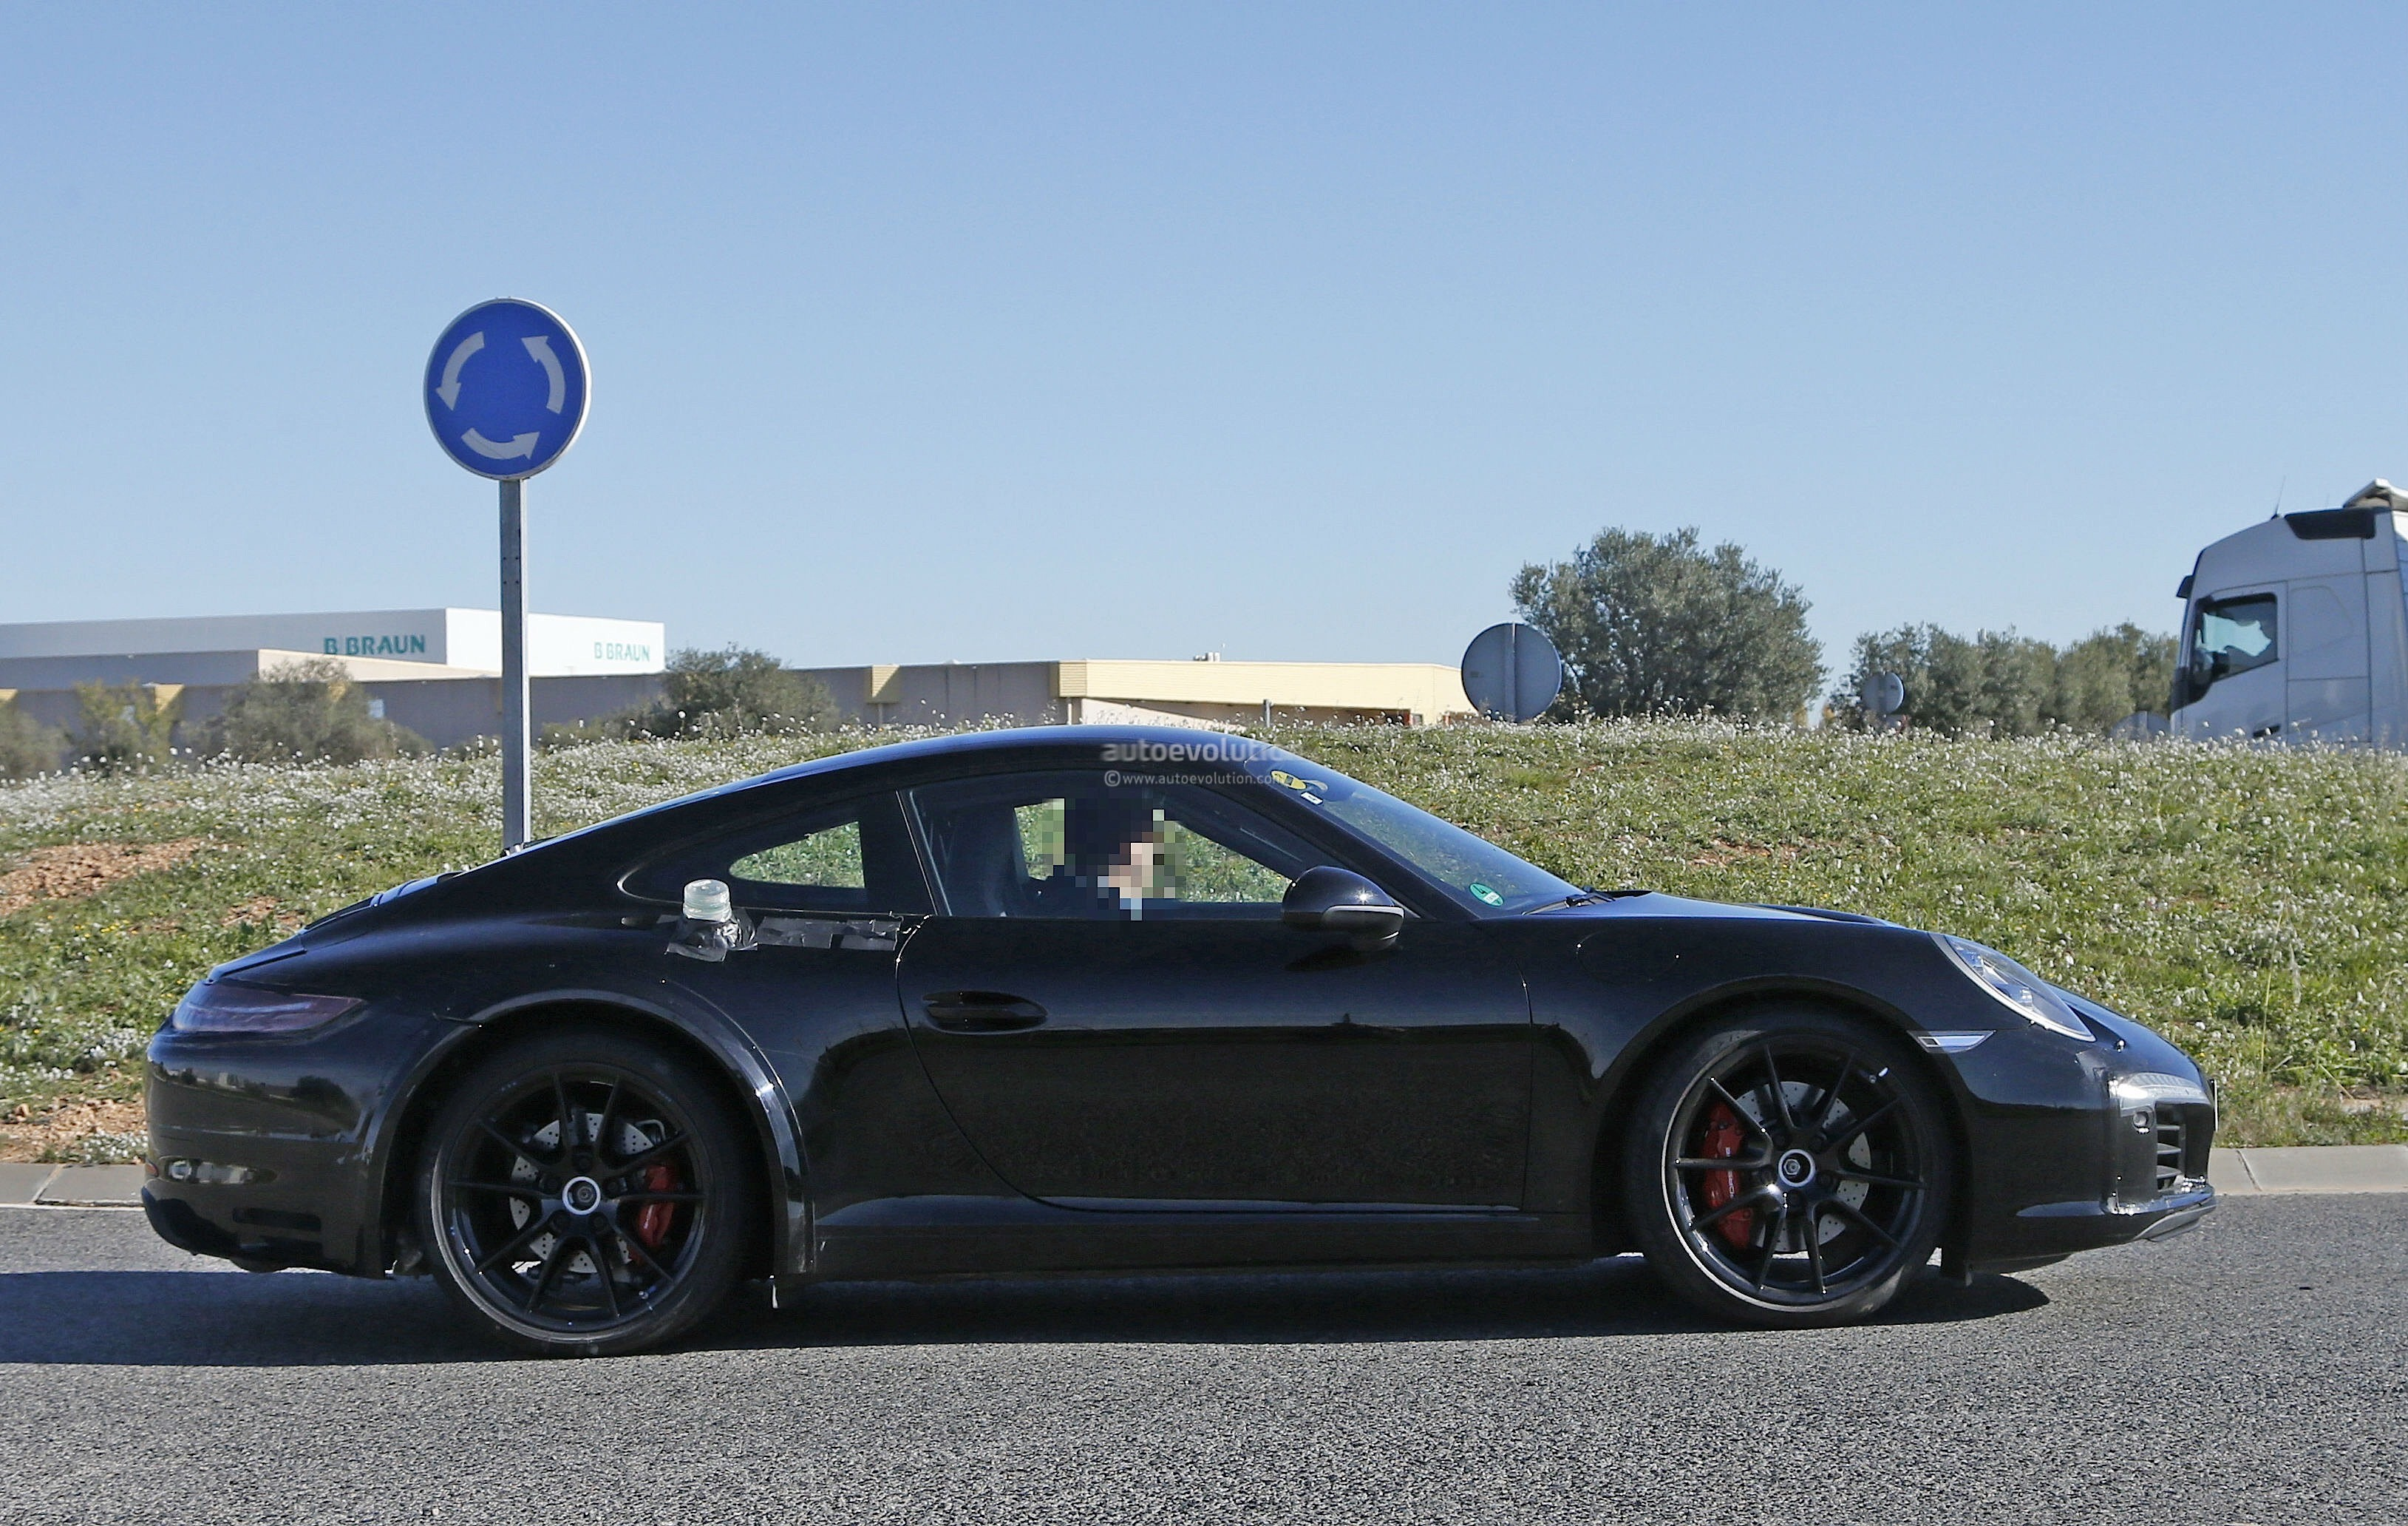 2019 Porsche 911 Turbo S photo - 1